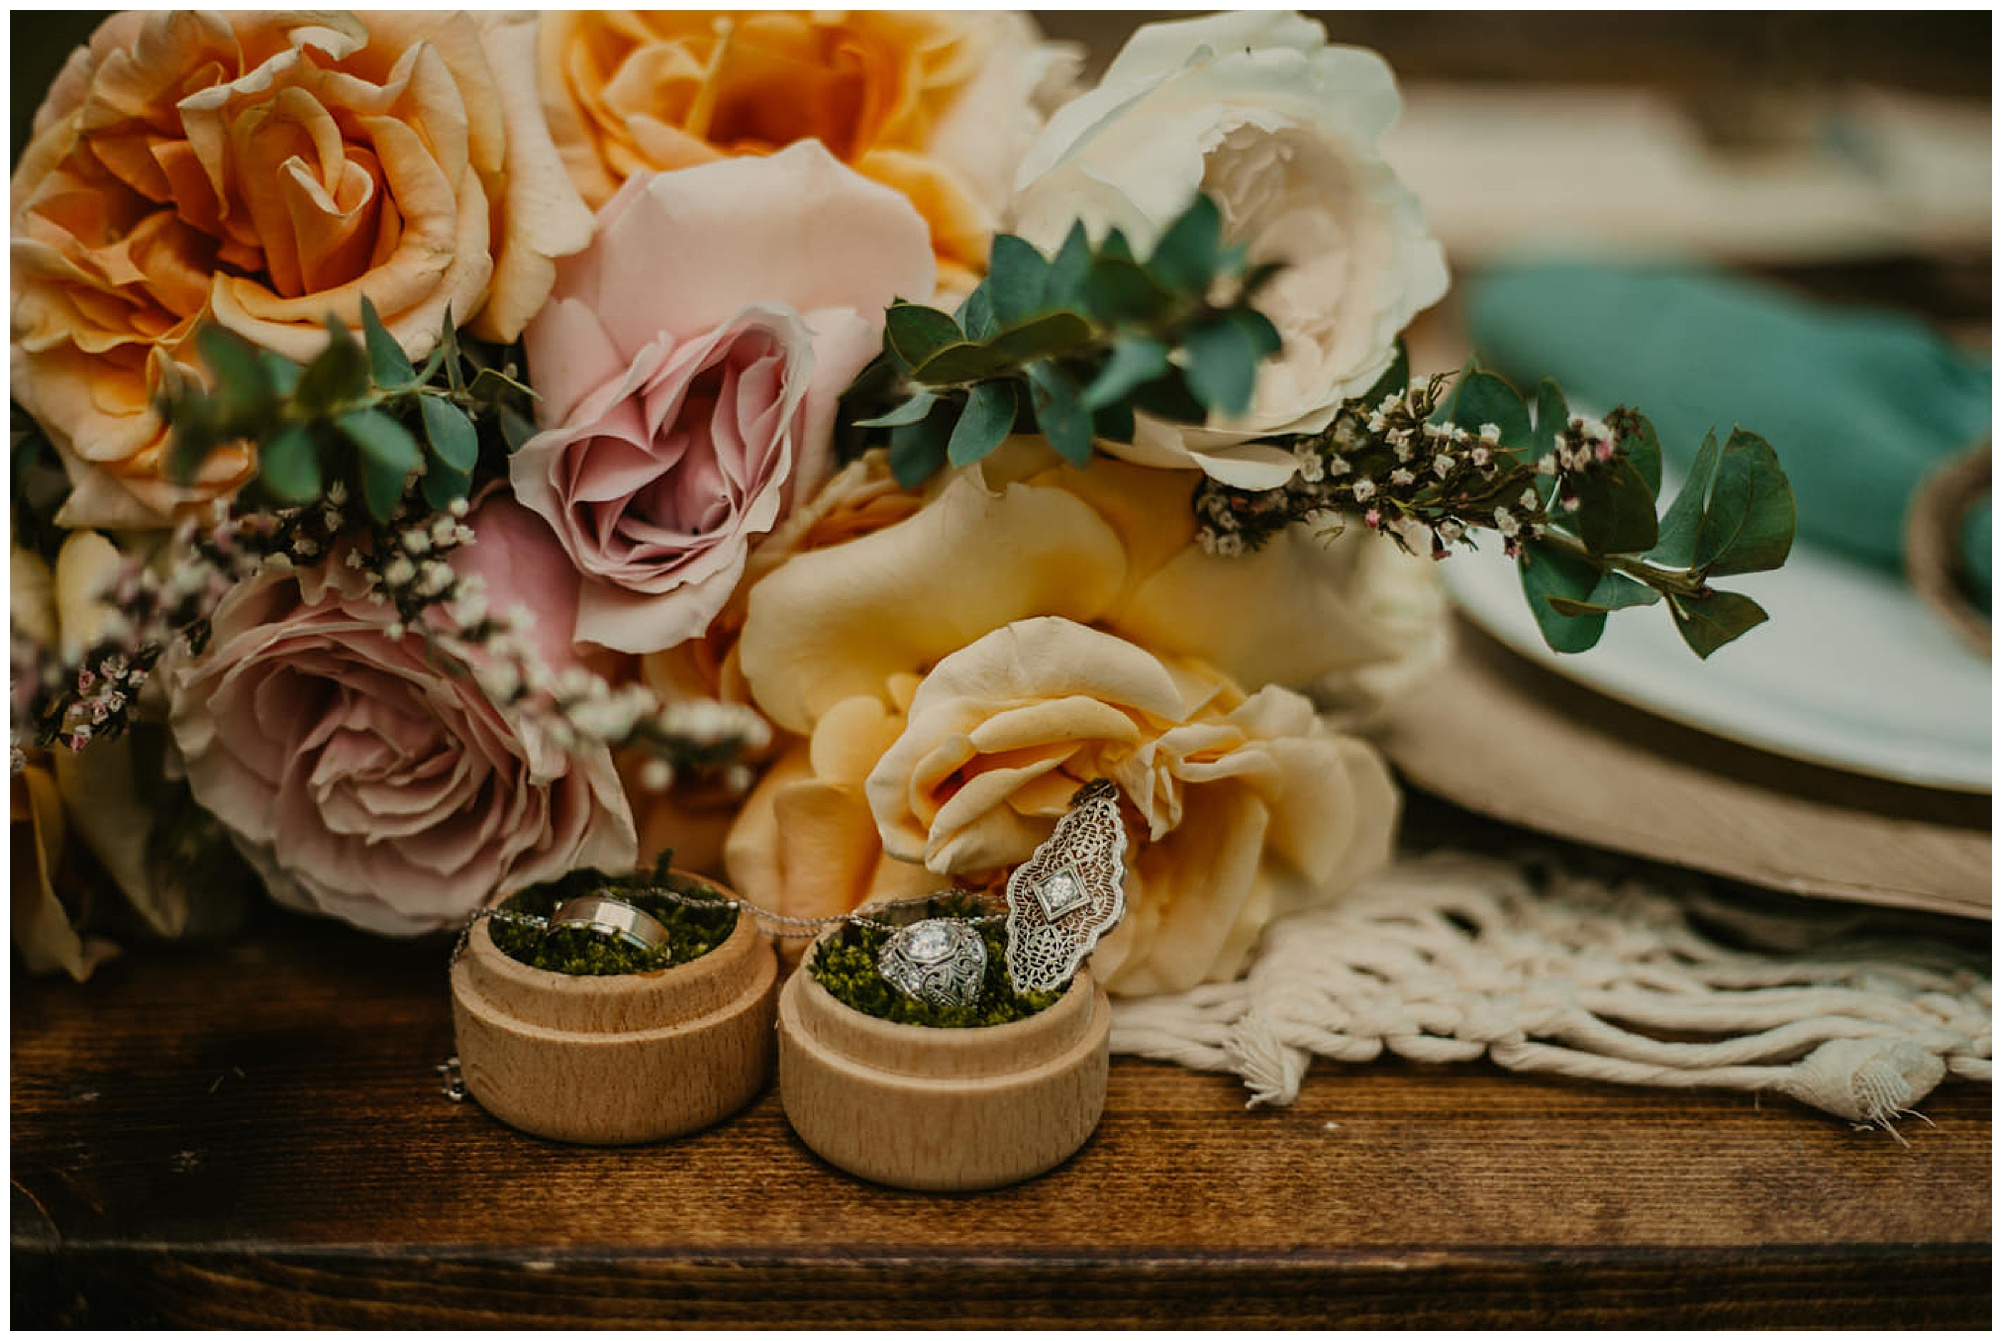 eco friendly and boho inspo with moss, rings, peach pink and yellow flowers, teal macrame and all natural accents and decor rustic table setting at carefree elopement at prancing deer farm maryland venue now featured on my eastern shore wedding